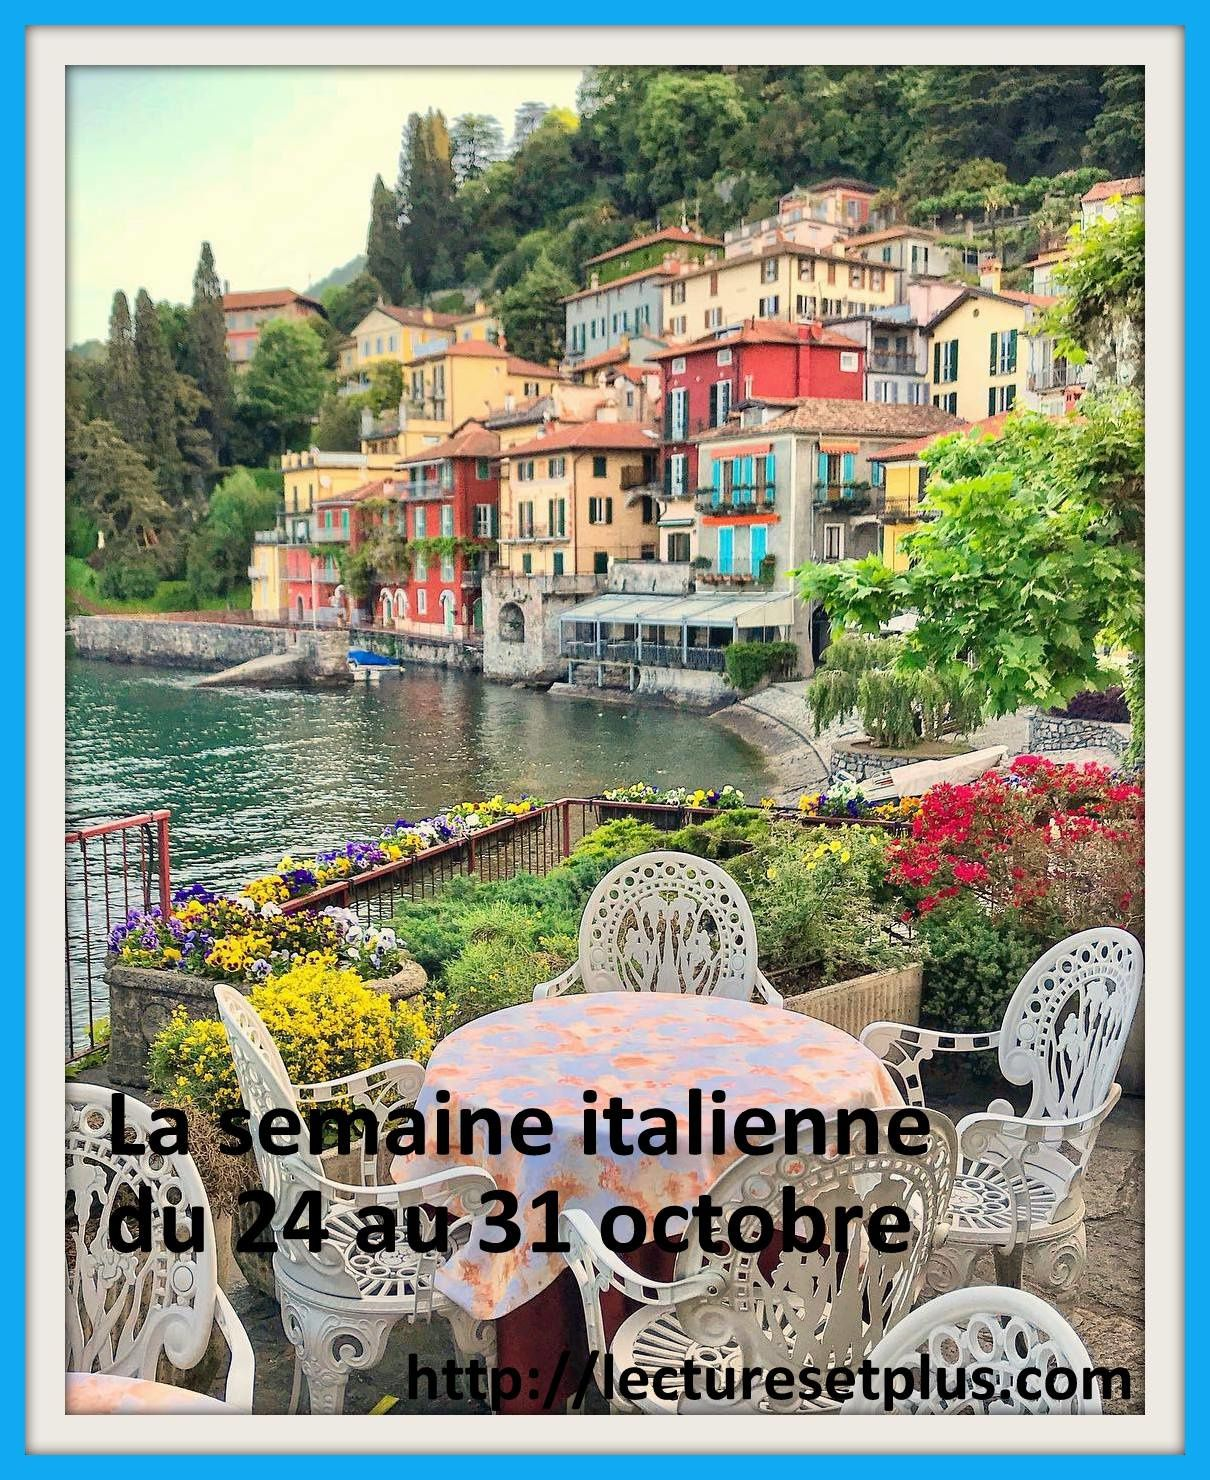 Semaine italienne : à table!